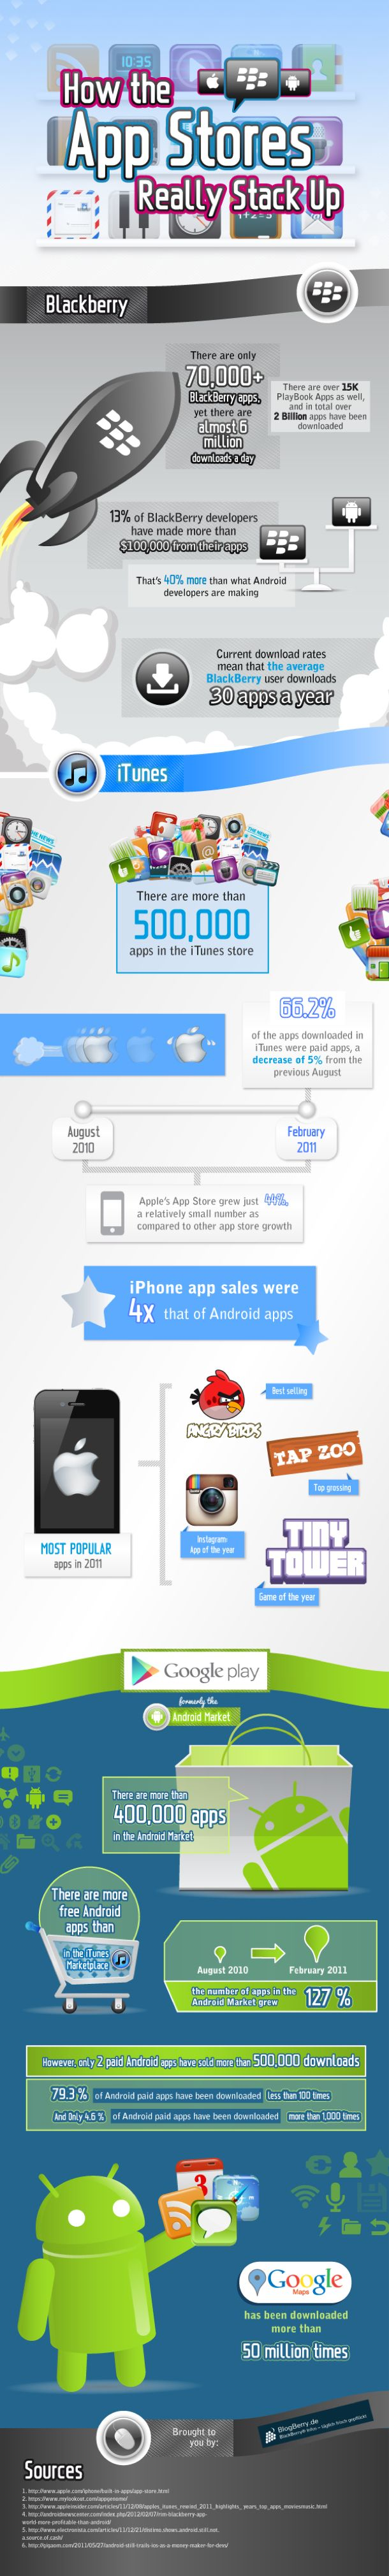 How the app stores stack up.